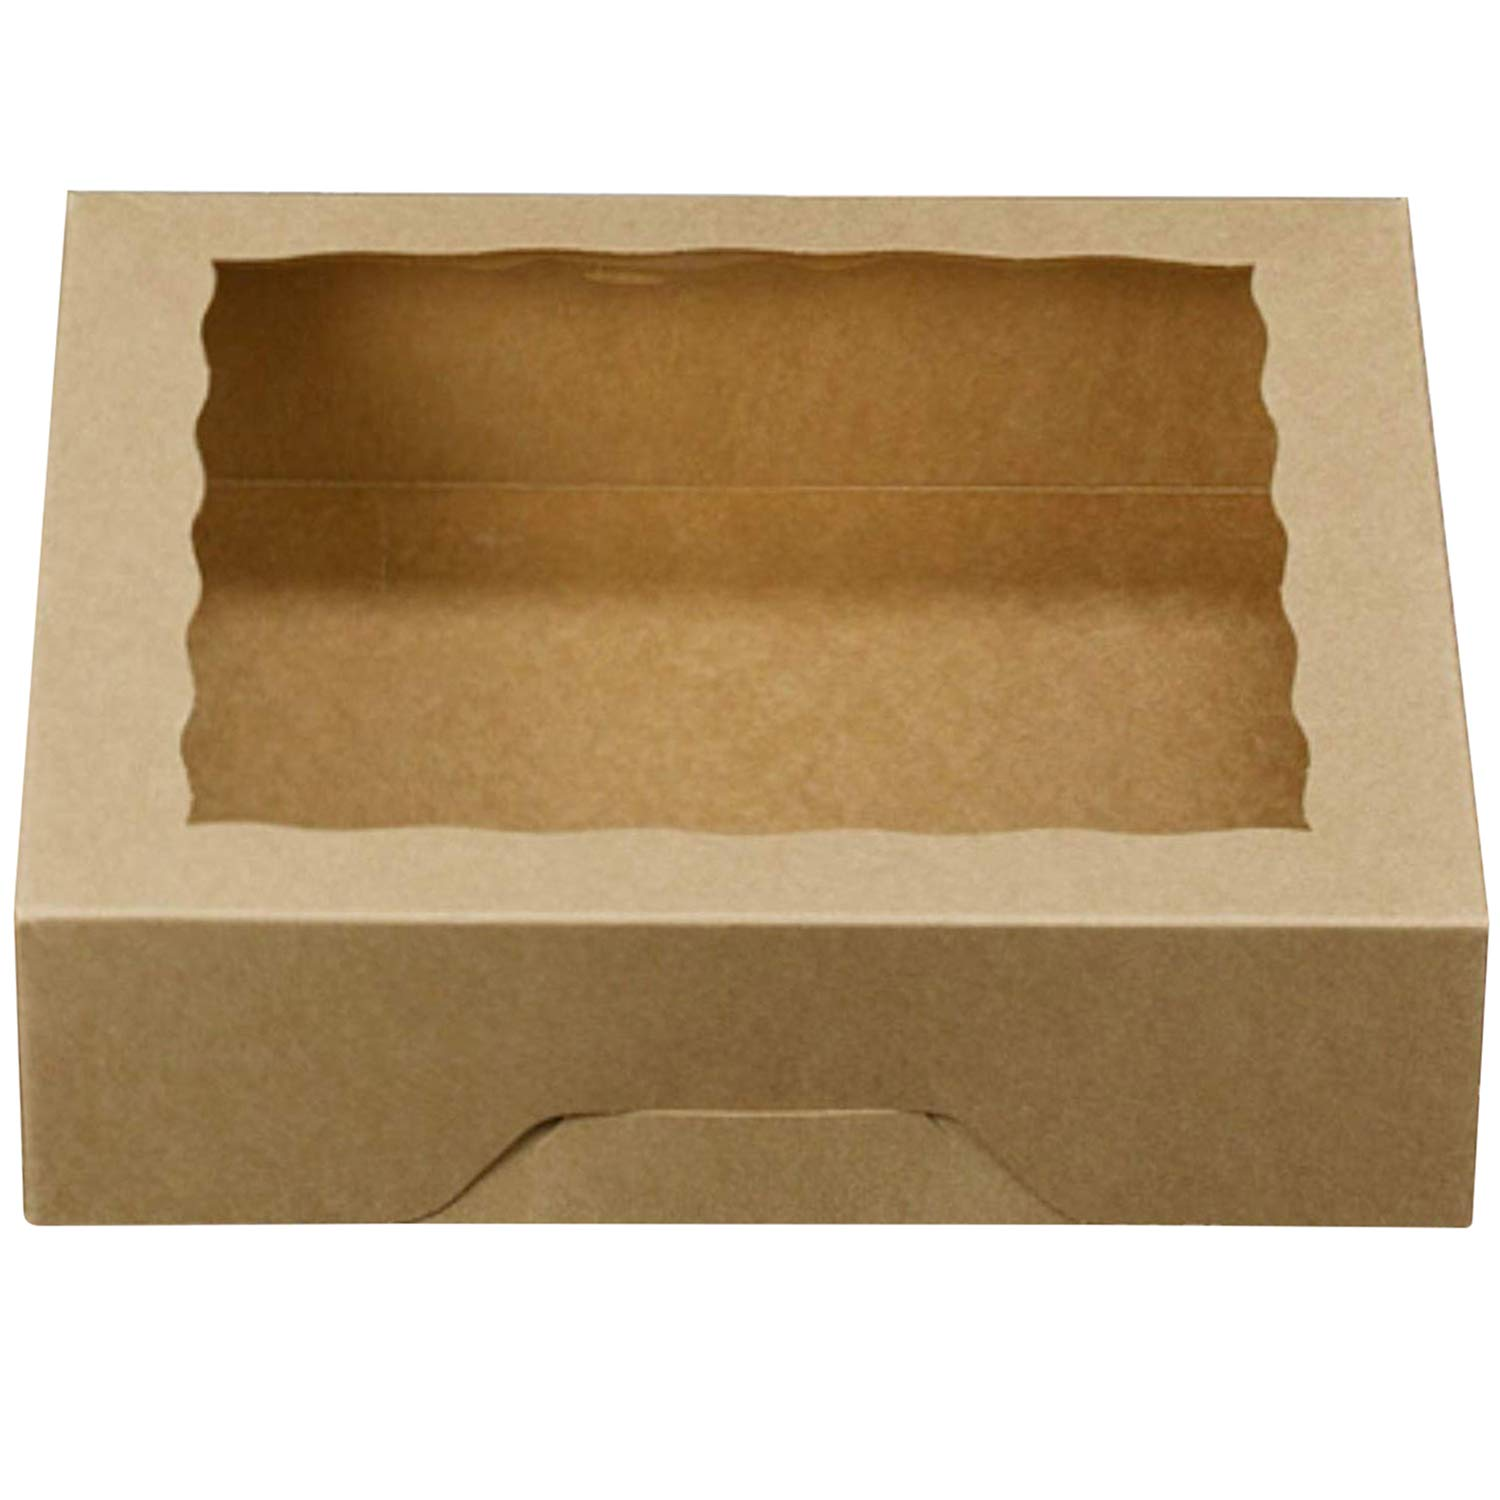 [25pcs]10inch Brown Natural Kraft Bakery Pie Boxes with PVC Windows,Large Cookie Box Disposable Cardboard Containers 10x10x2.5inch,25 of Pack